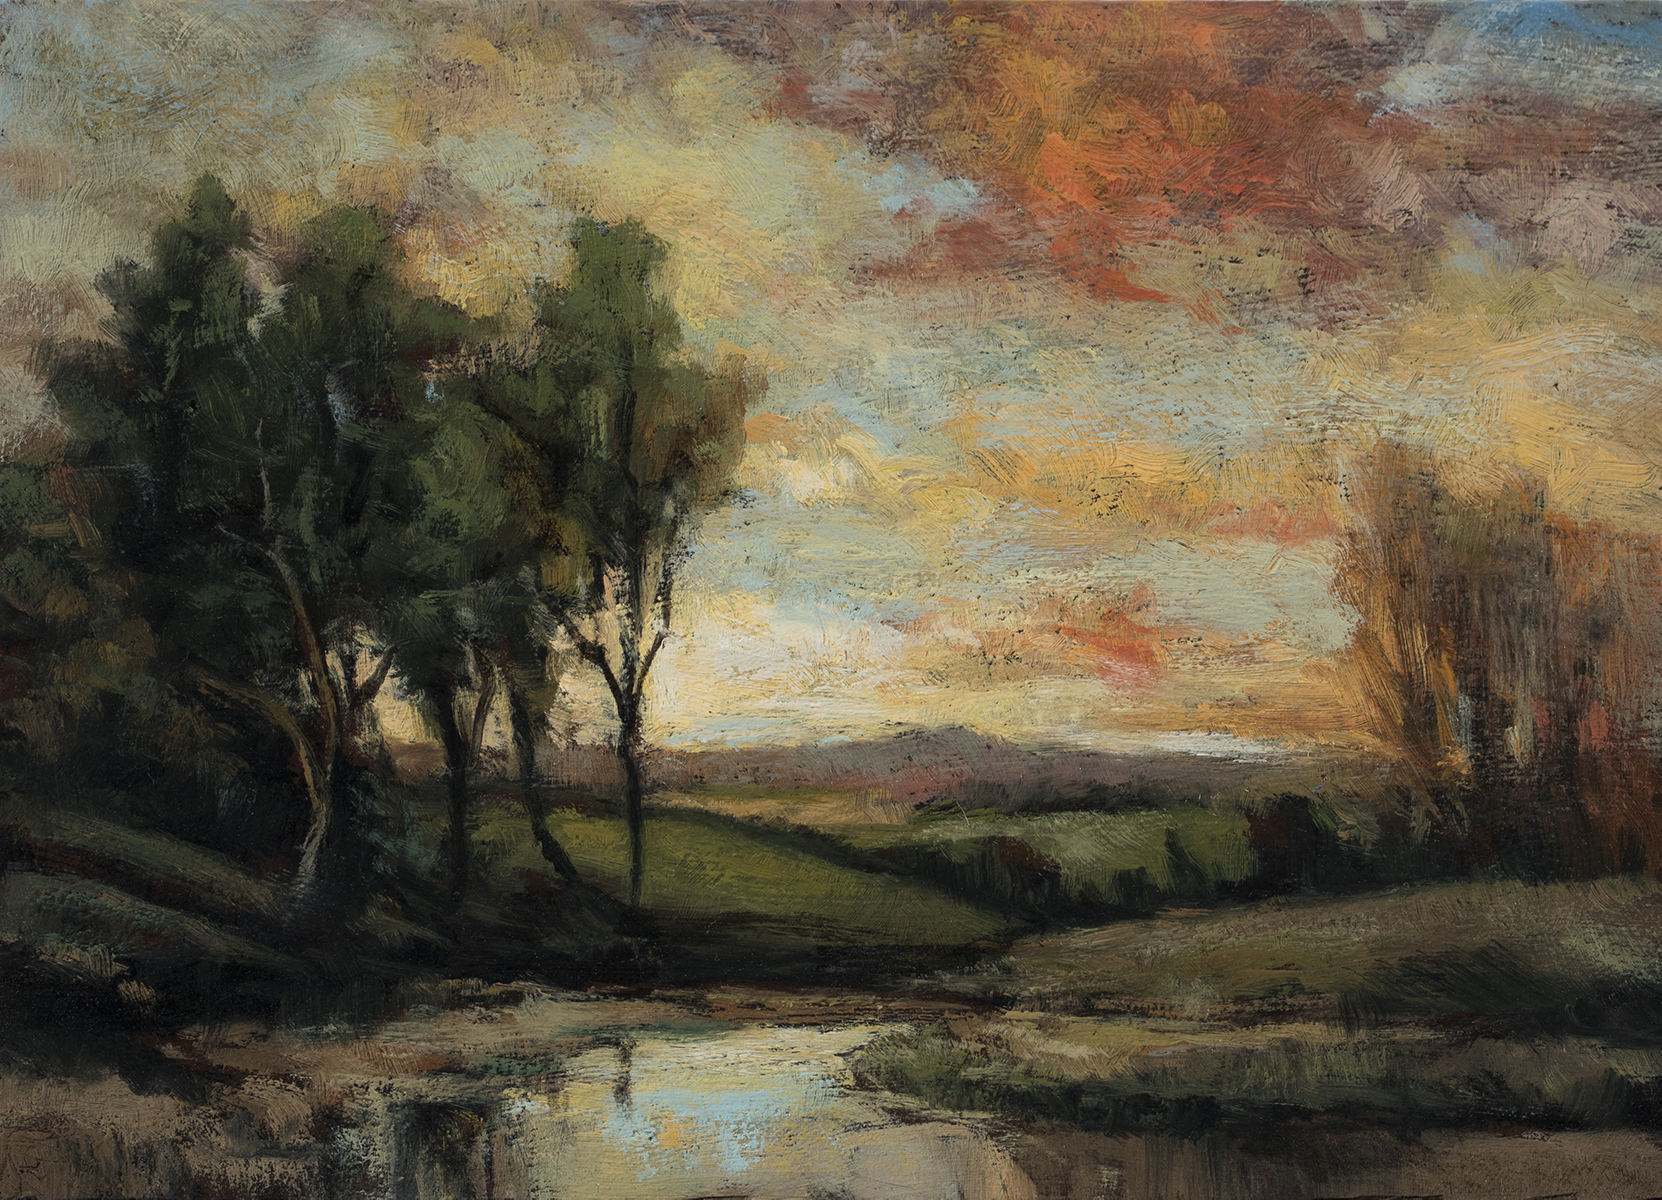 Study after Charles Appel Marsh Landscape by M Francis McCarthy - 5x7 Oil on Wood Panel